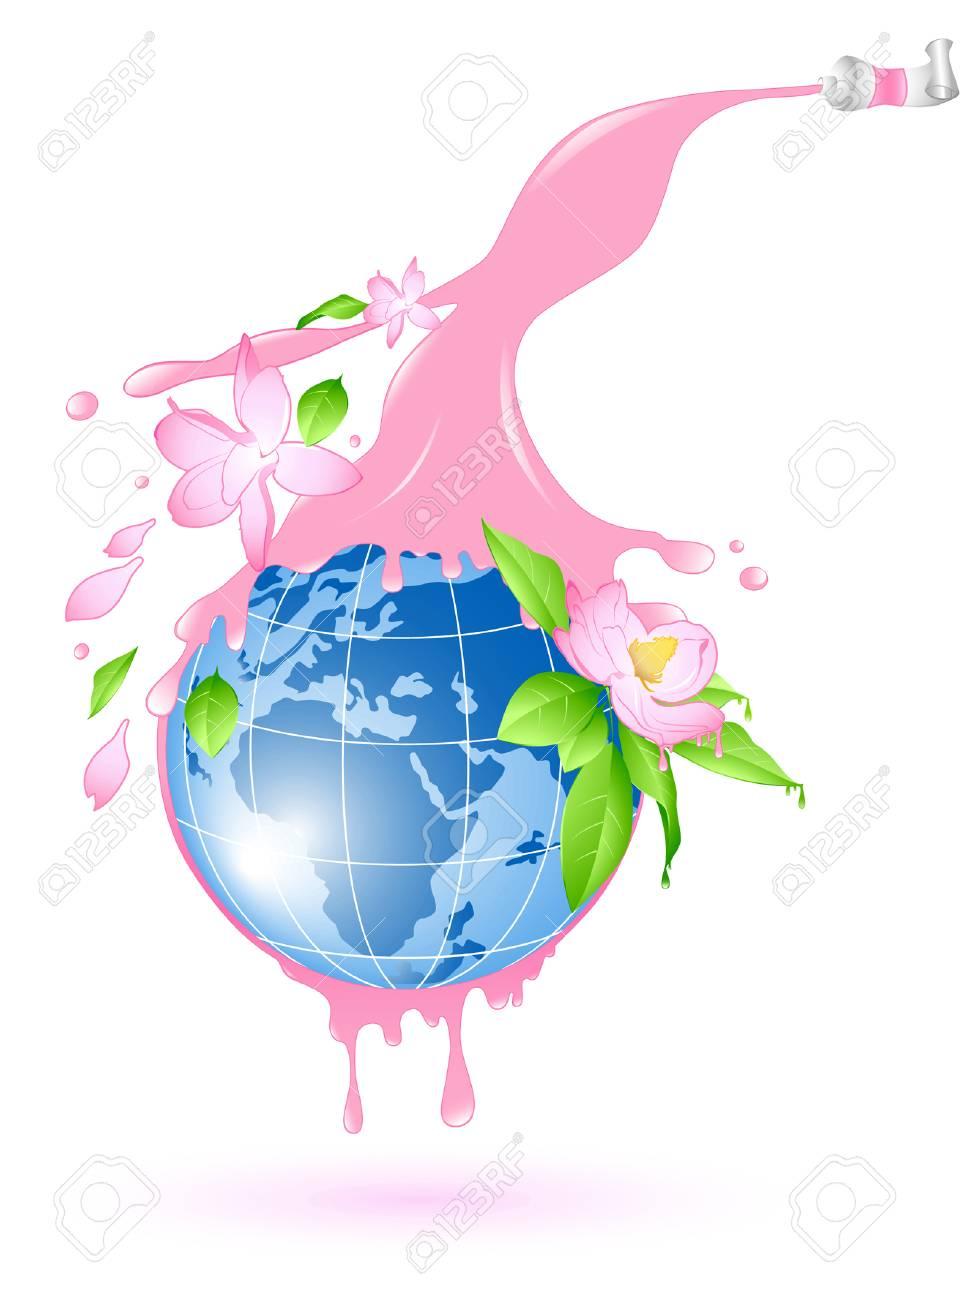 flowering planet with splashes of pink paint and flowers Stock Vector - 5602332